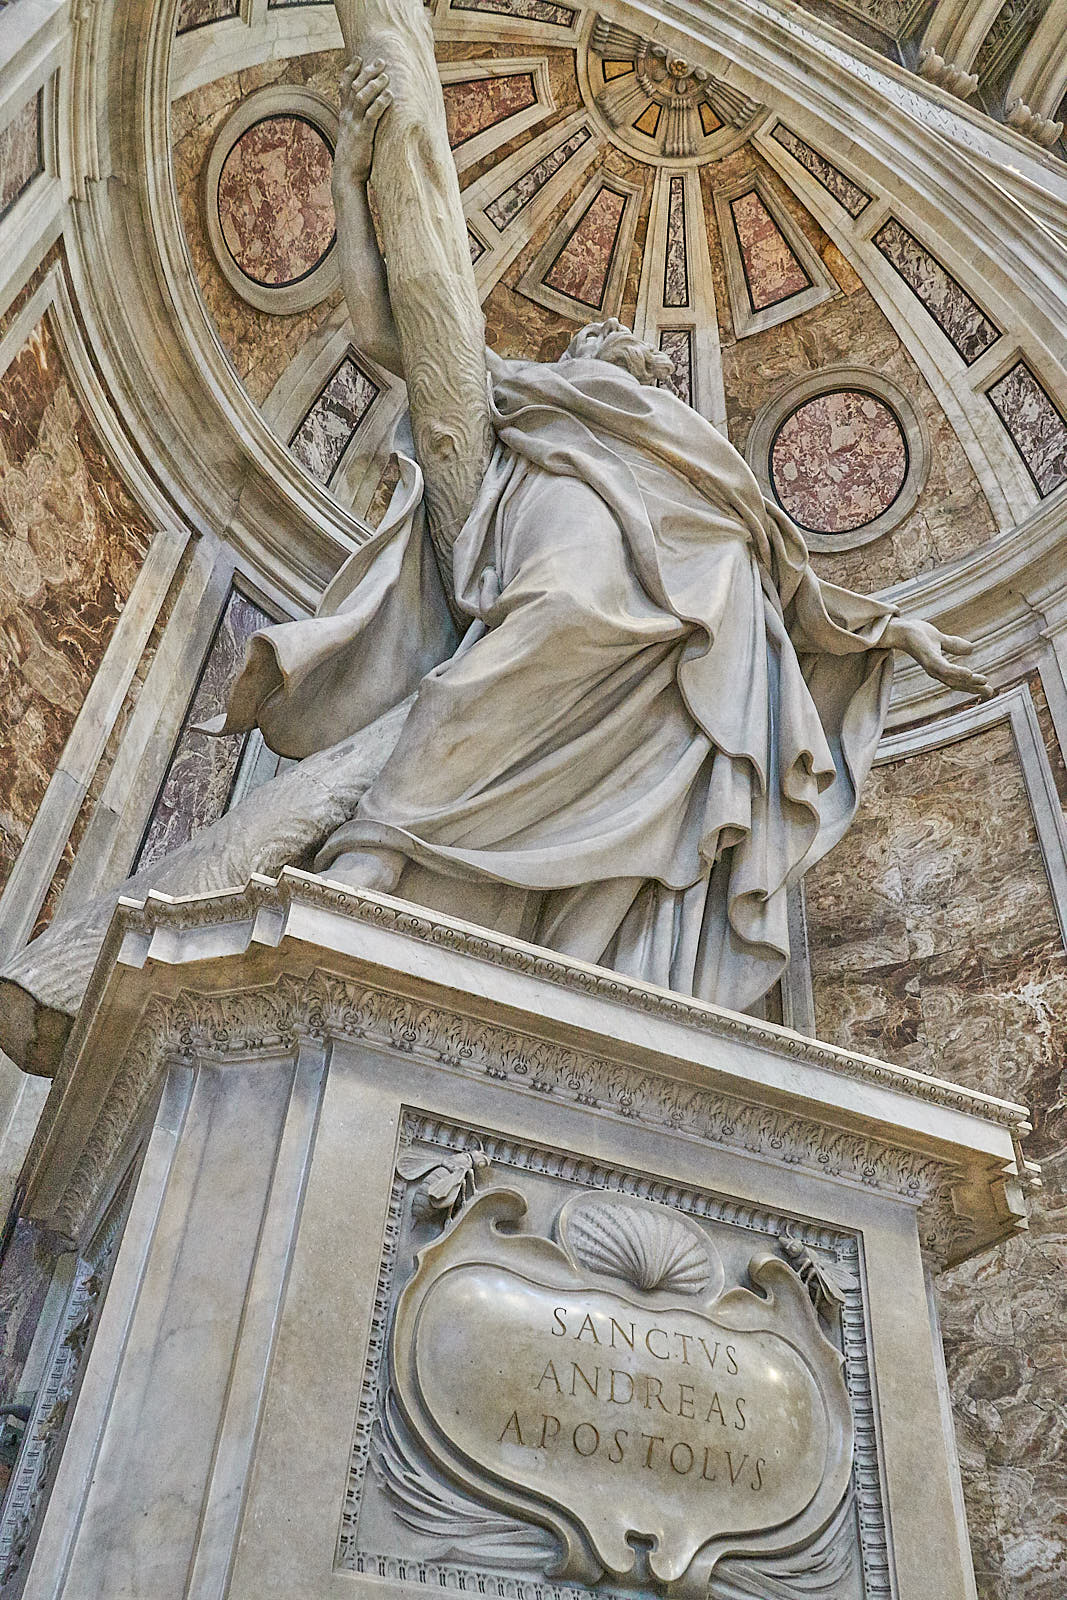 A sculpture of Andrew memorializes the Apostle at St. Peter's Basilica in Rome.